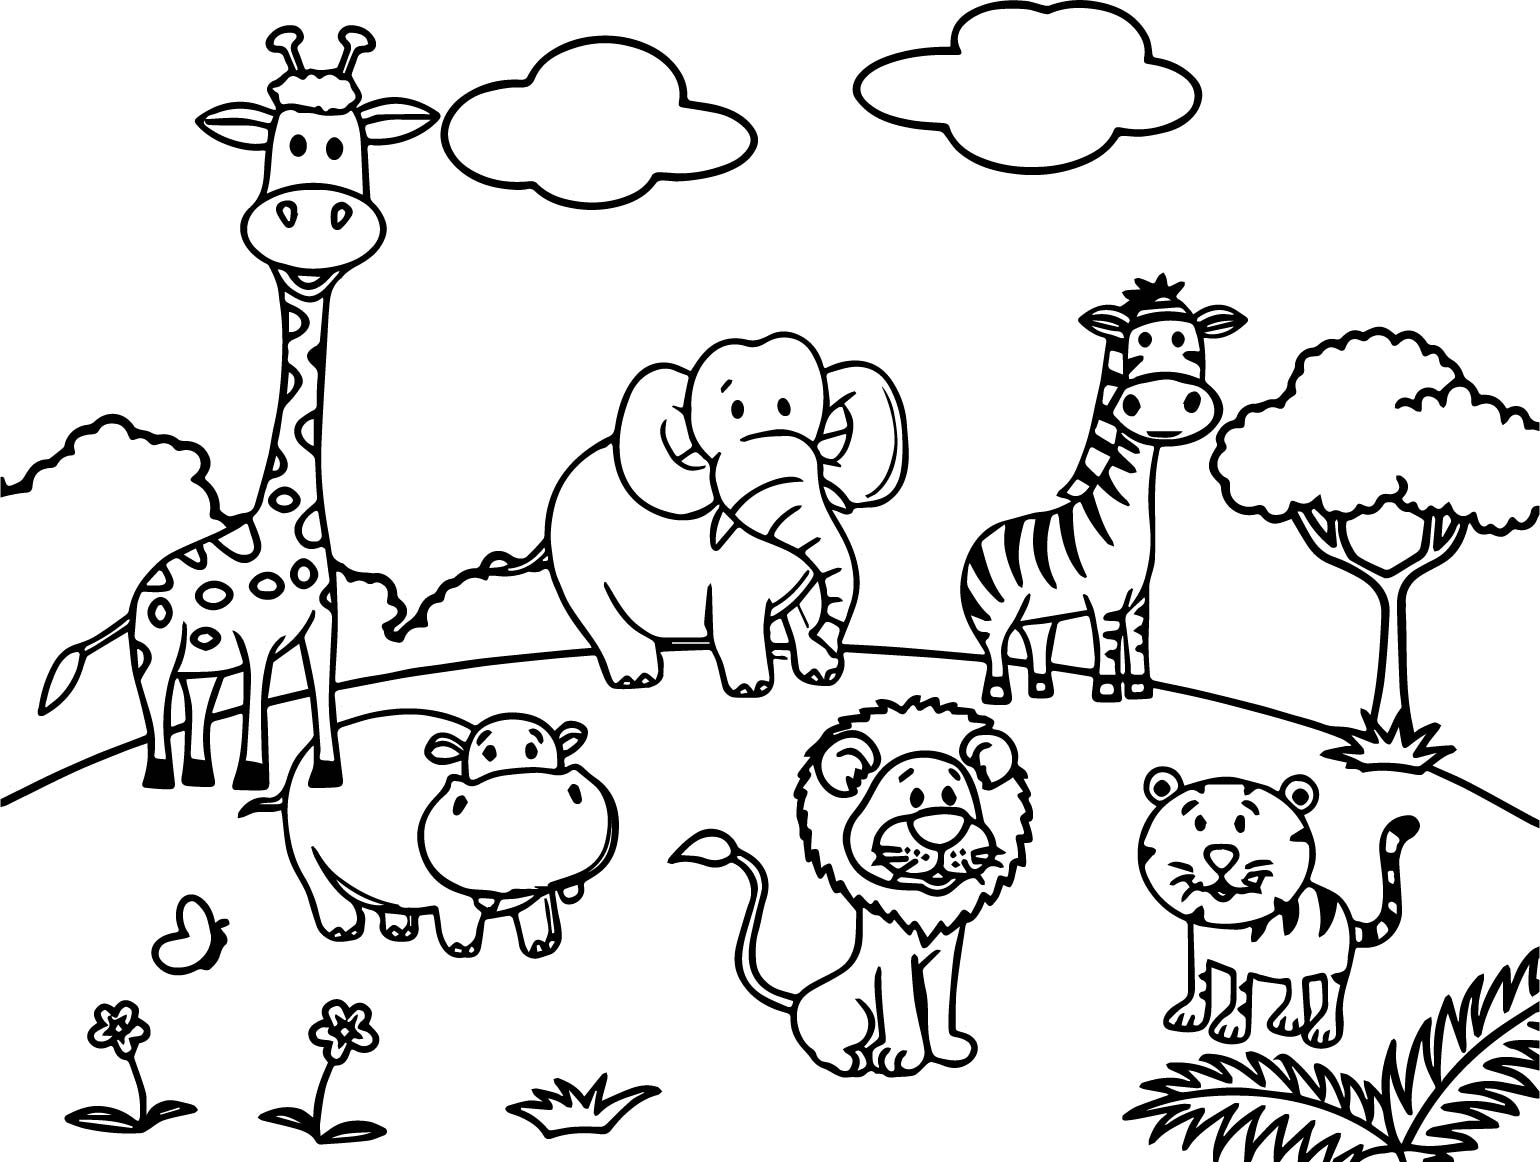 zoo animals coloring pictures zoo animal coloring pages free download on clipartmag pictures zoo coloring animals